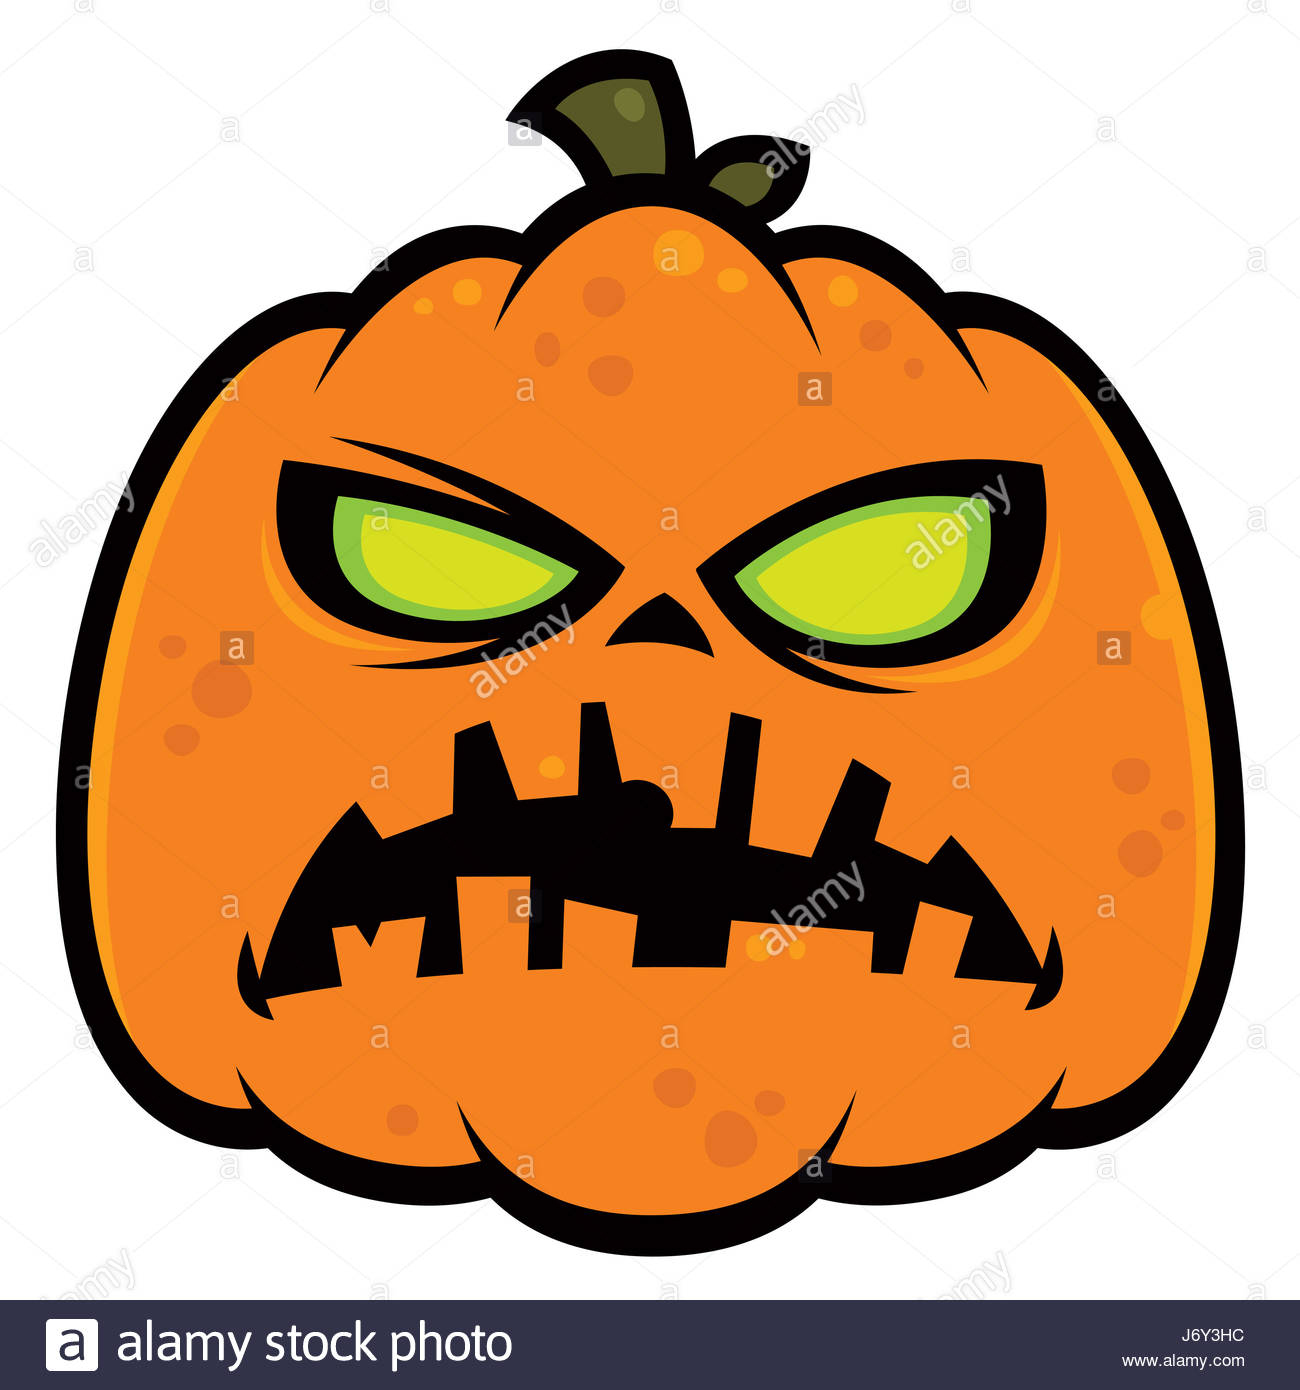 1300x1390 Halloween Horror Pumpkin Zombie Holiday Illustration Scary